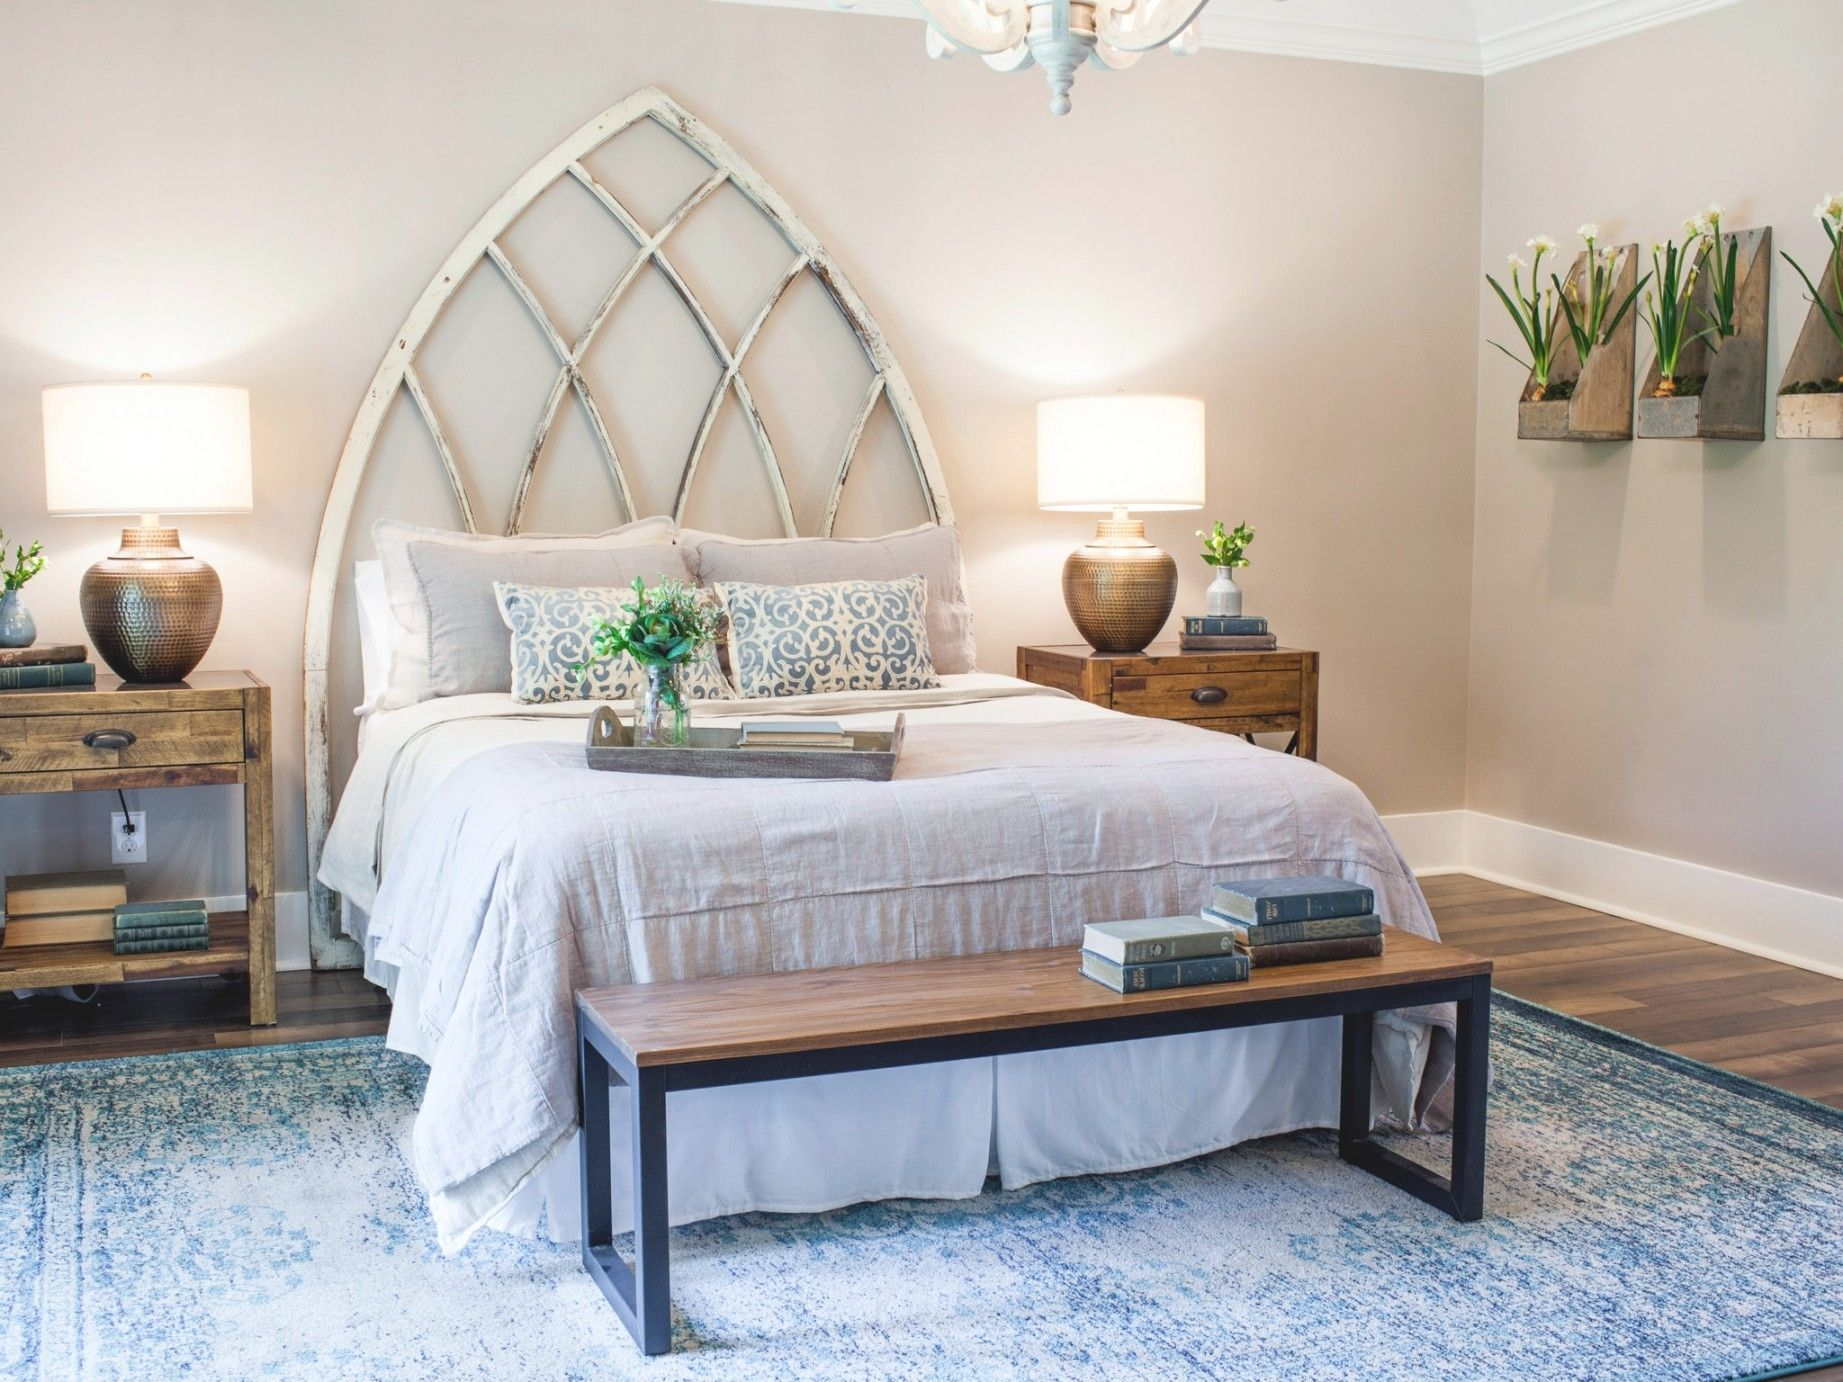 10 Best And Modern Bedroom Decorating For Your Cozy: Top 10 Fixer Upper Bedrooms